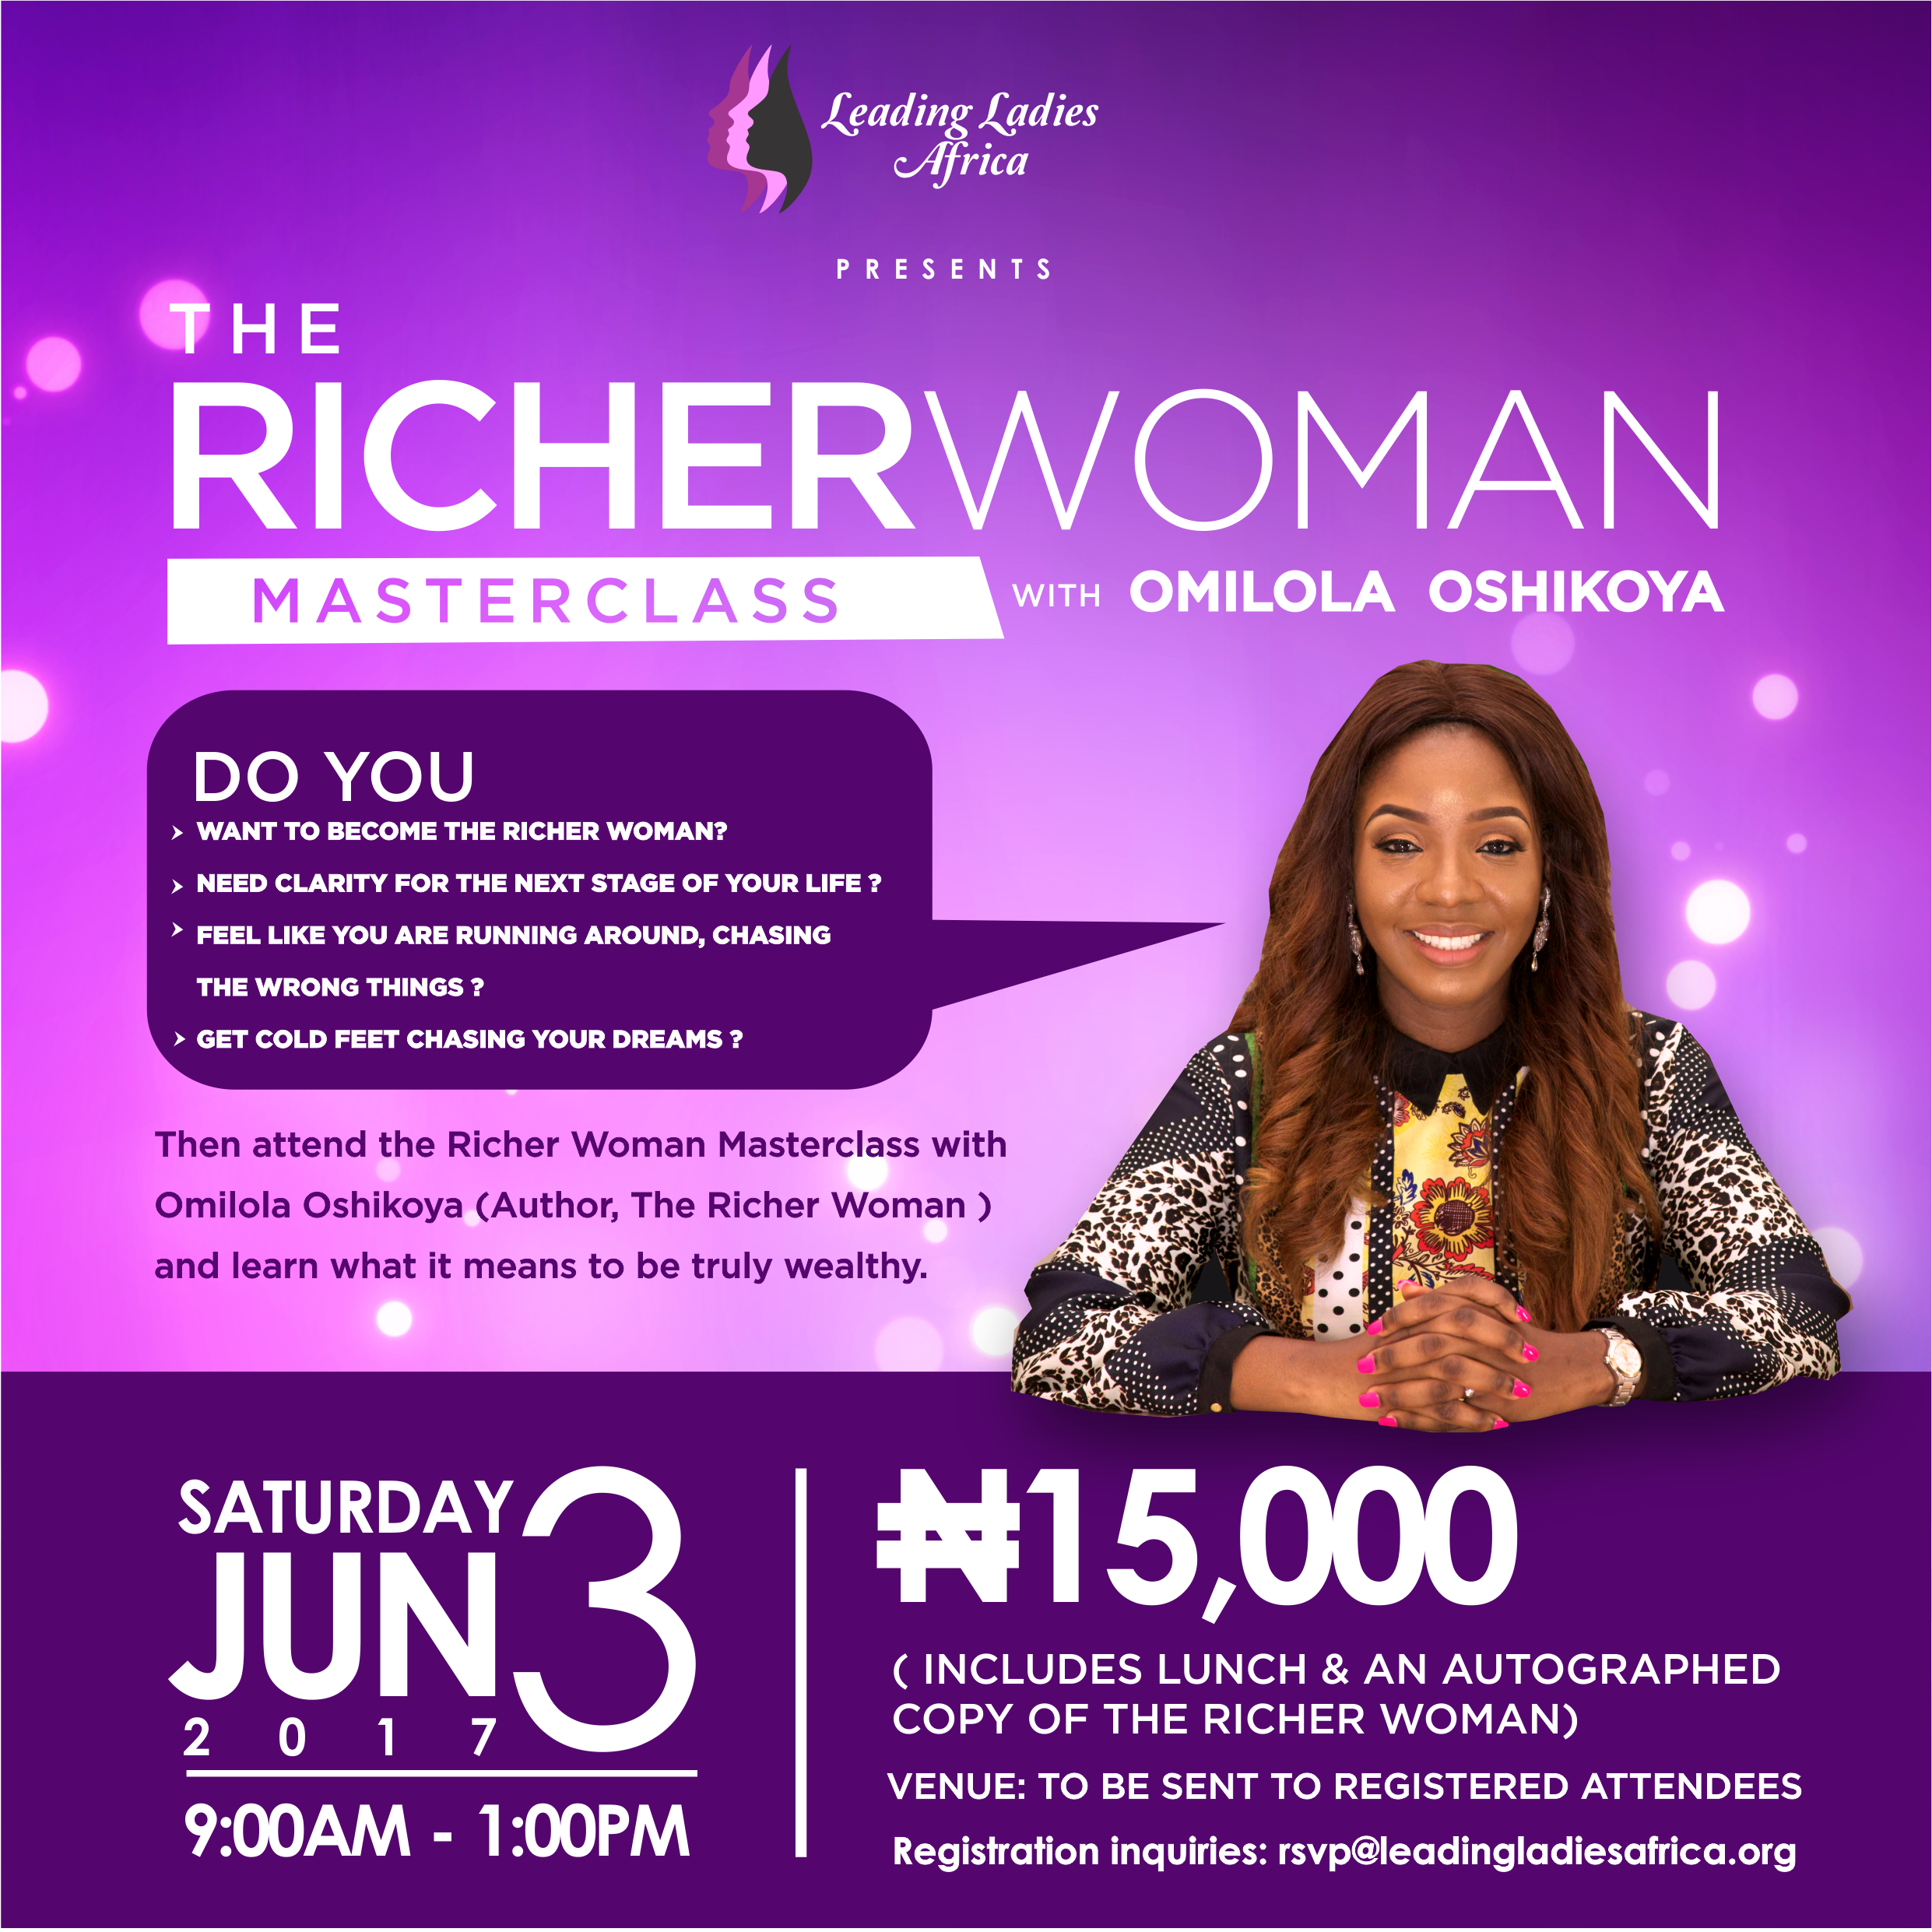 The Richer Woman Masterclass with Omilola Oshikoya